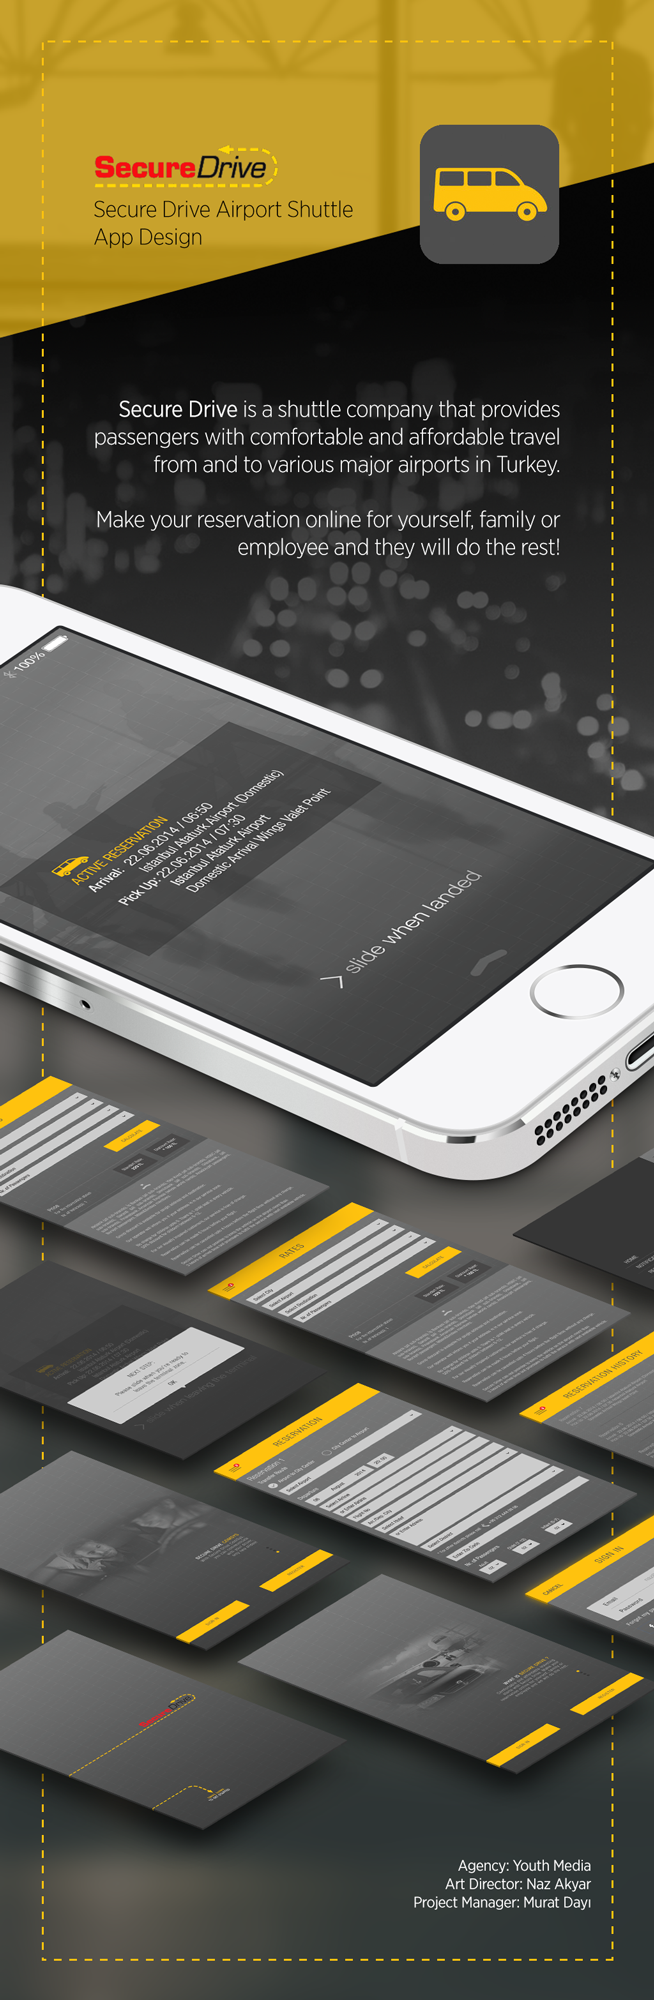 Mobile app ios TRANSFER shuttle application user interface user experience